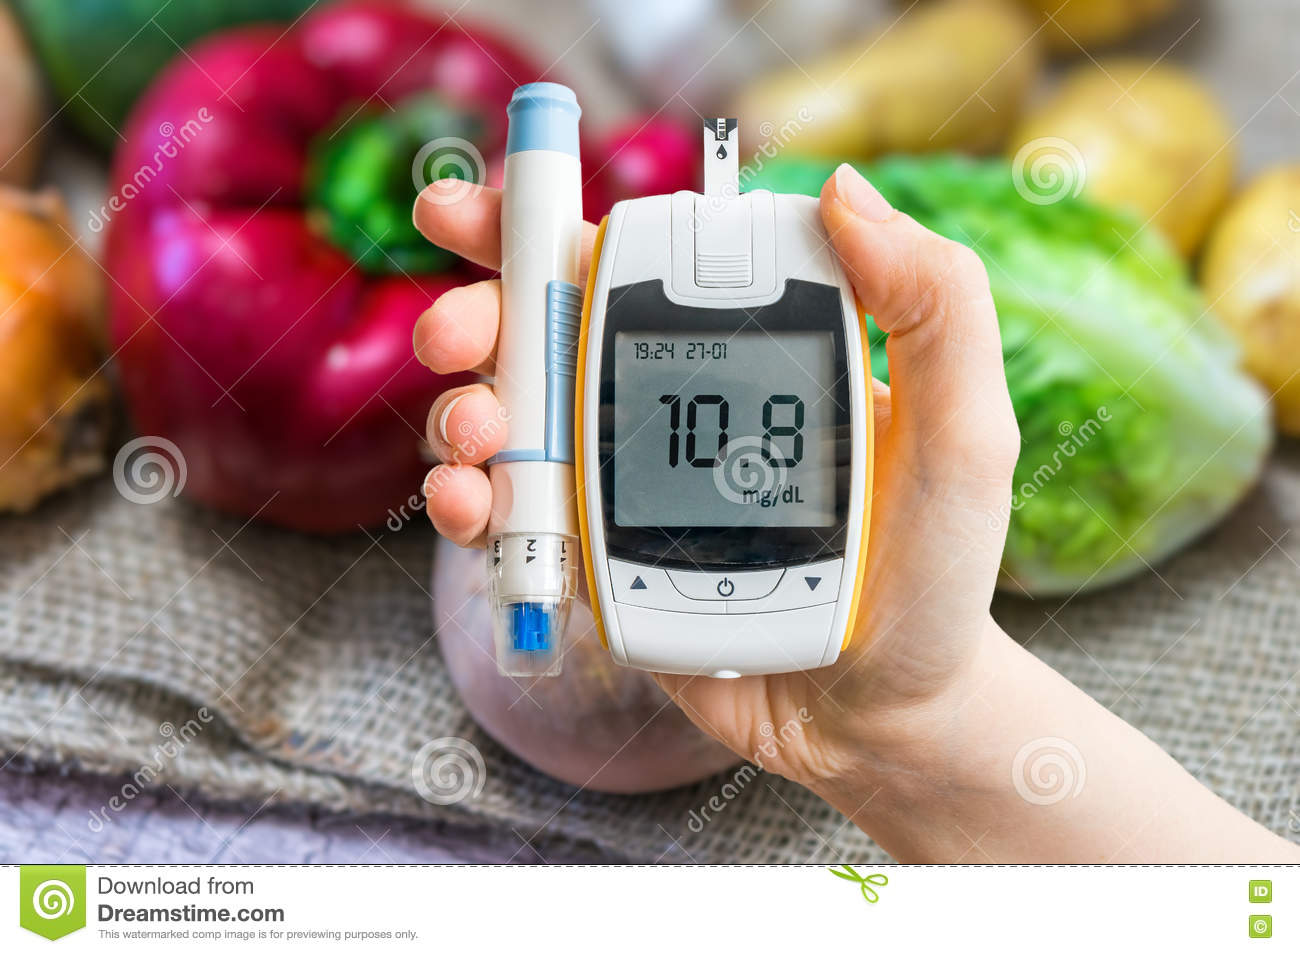 Diabetic diet and diabetes concept. Hand holds glucometer.